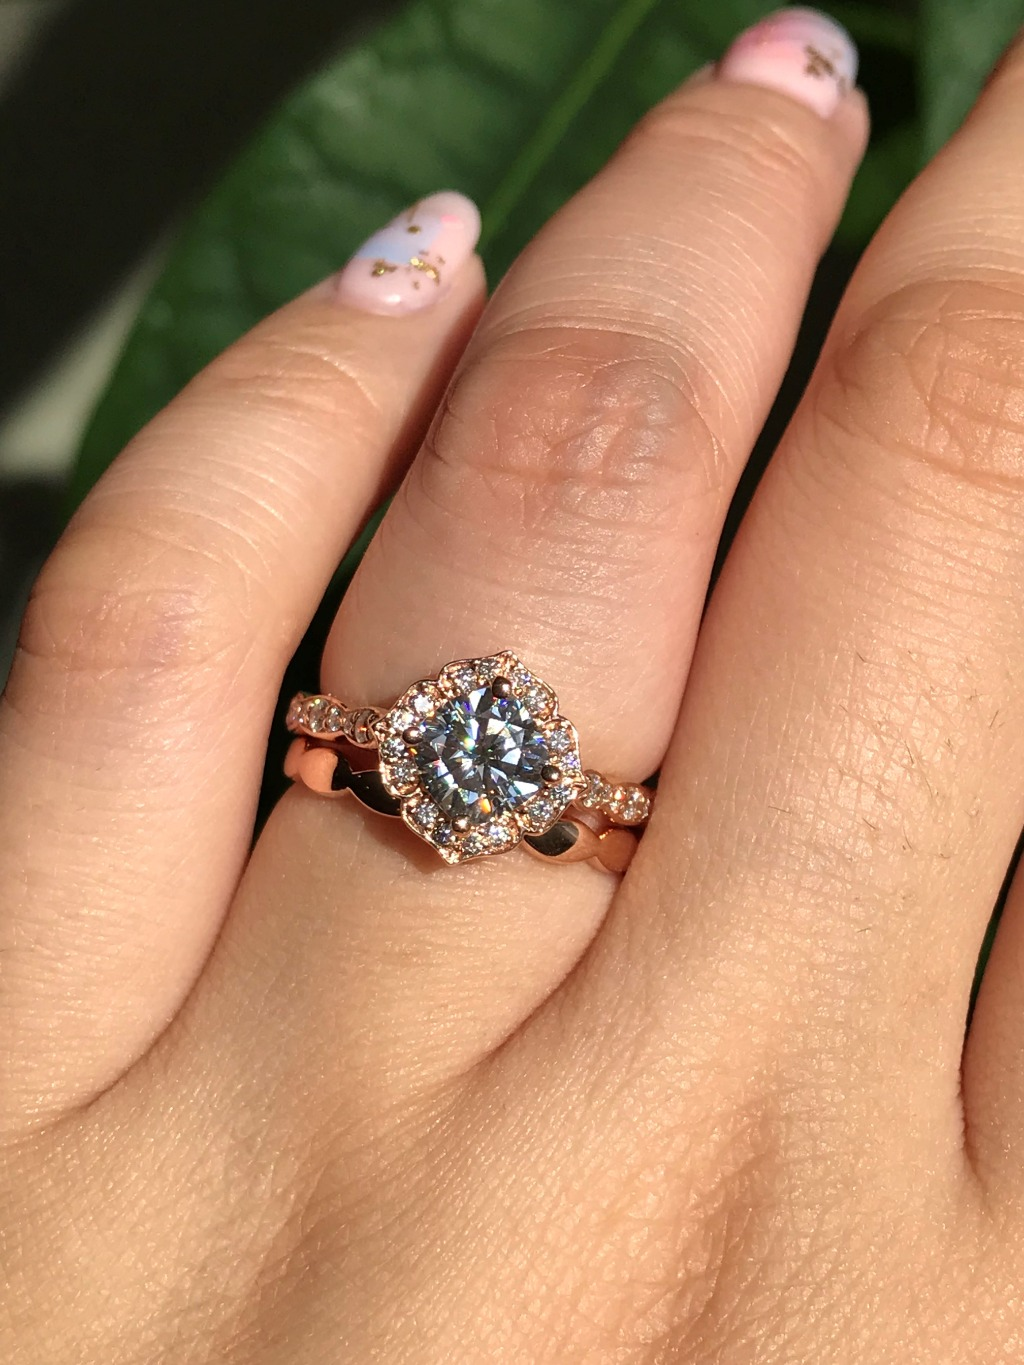 Mini Vintage Floral Moissanite Bridal Set with Plain Gold Scalloped Band in Rose Gold ~ See more from La More Design's Wedding Rings